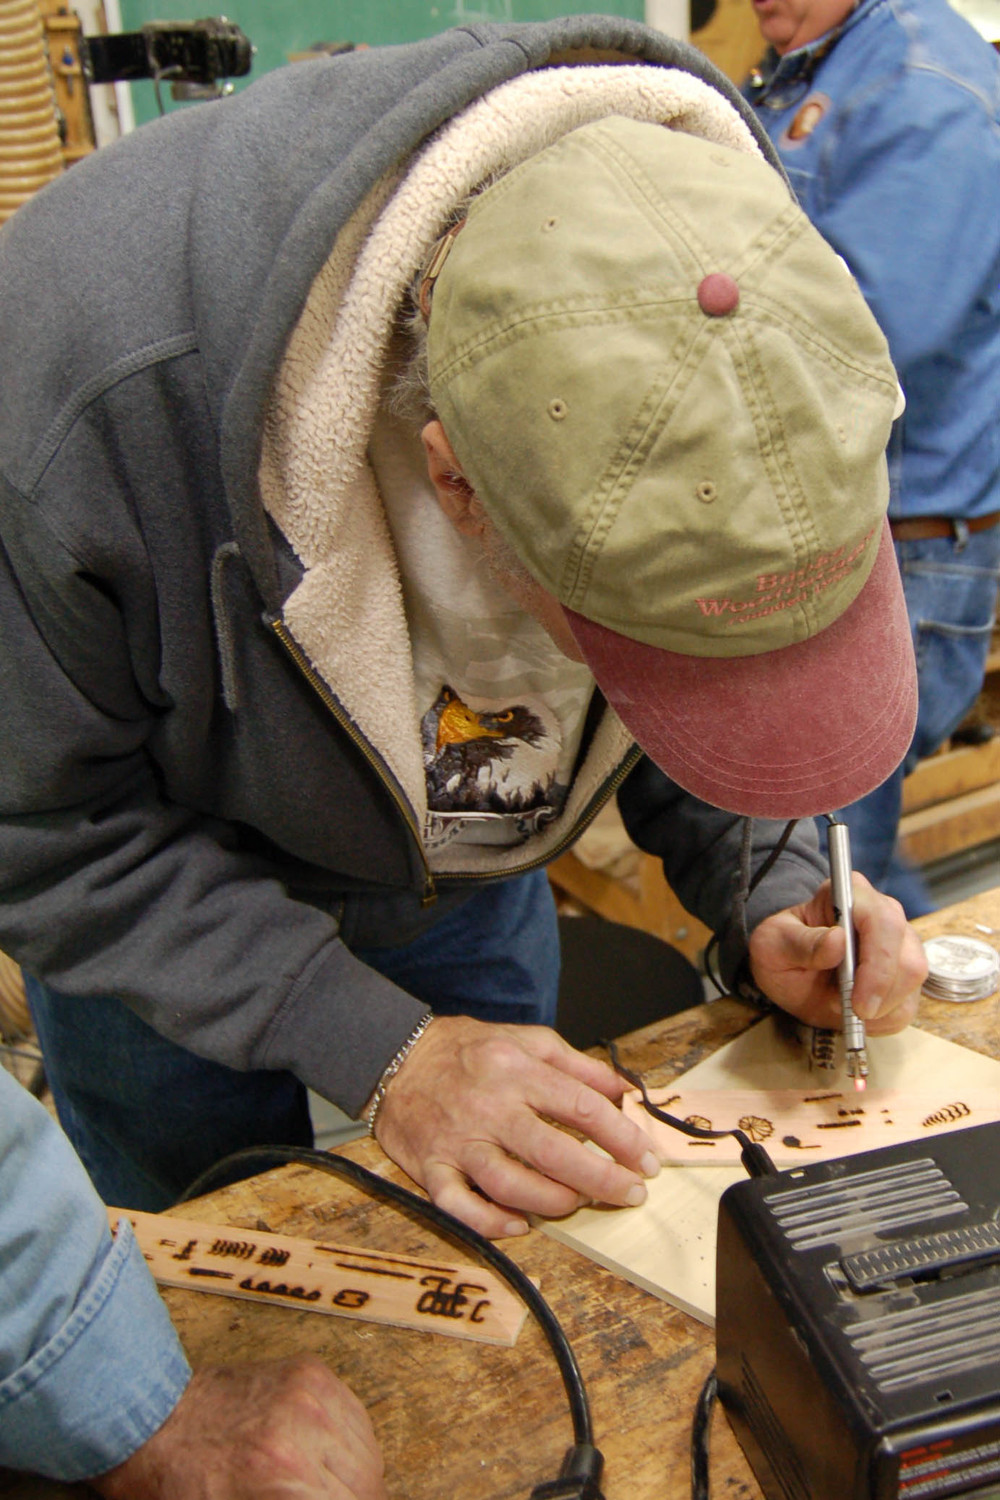 Tom tries his hand at pyrography.